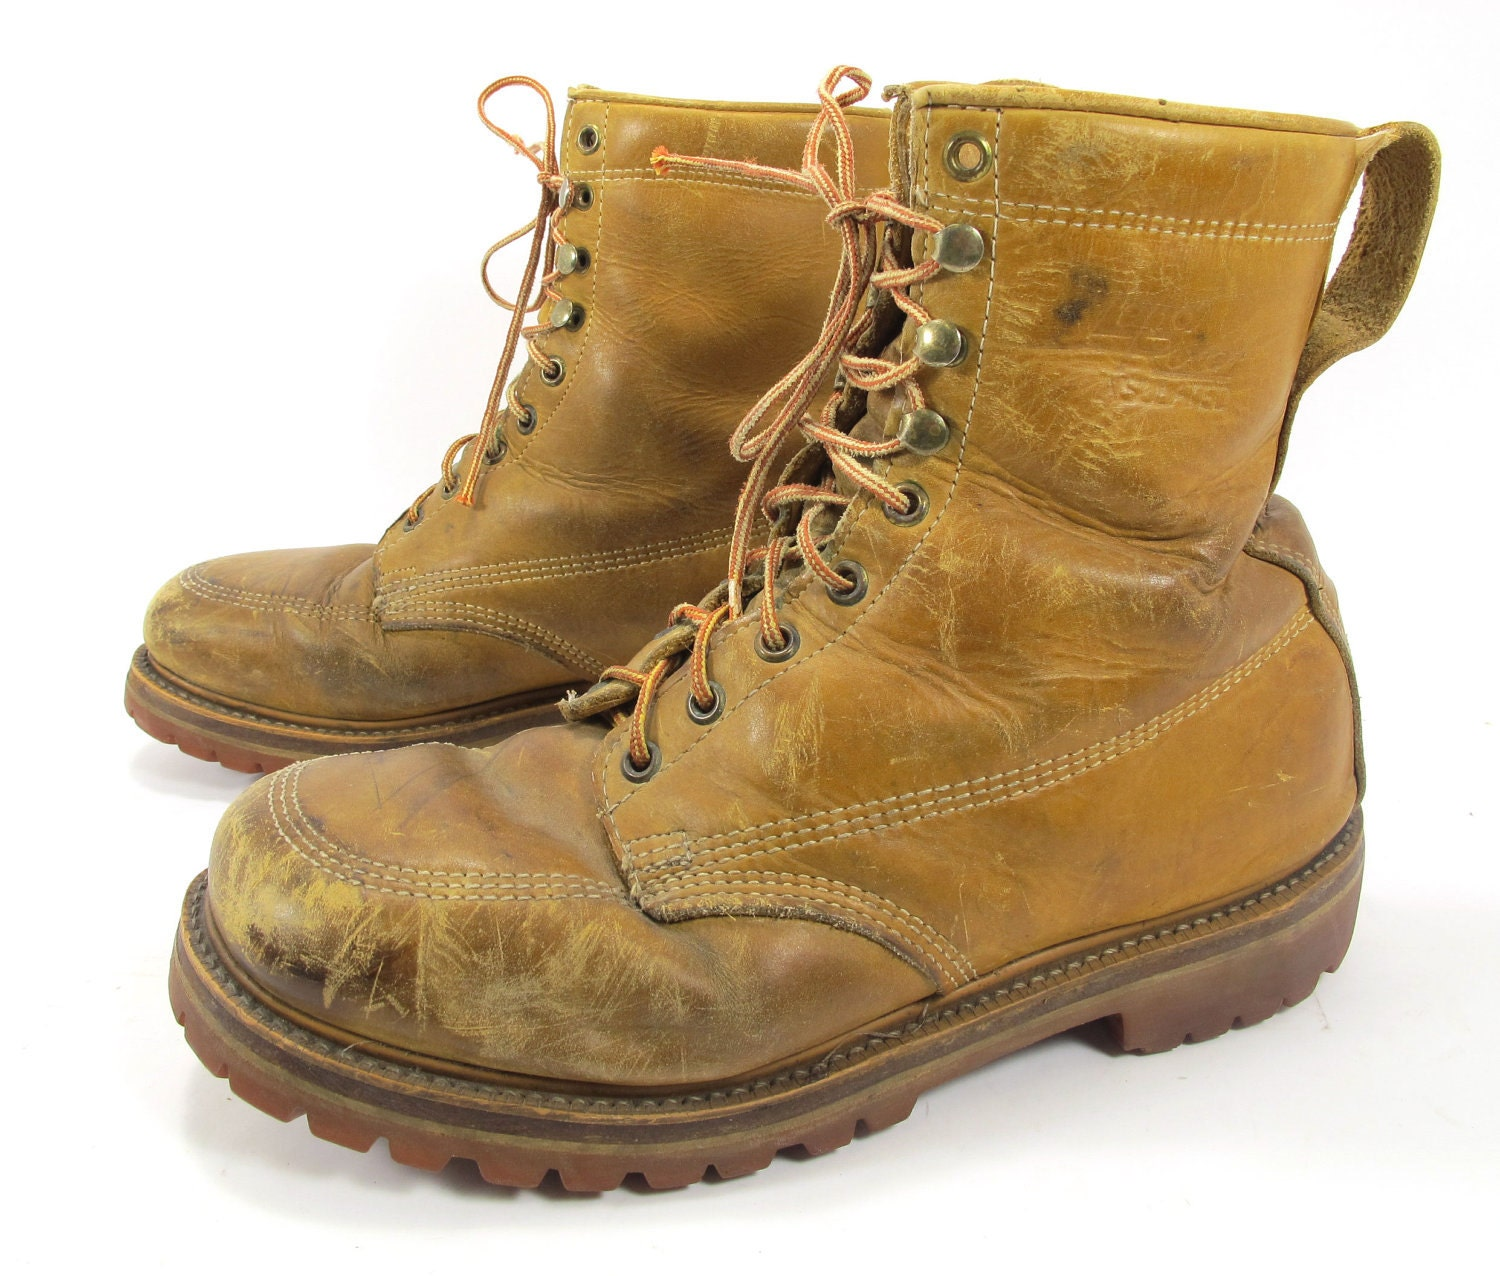 vintage land rover work boots lineman vibram soles size 10 5. Black Bedroom Furniture Sets. Home Design Ideas